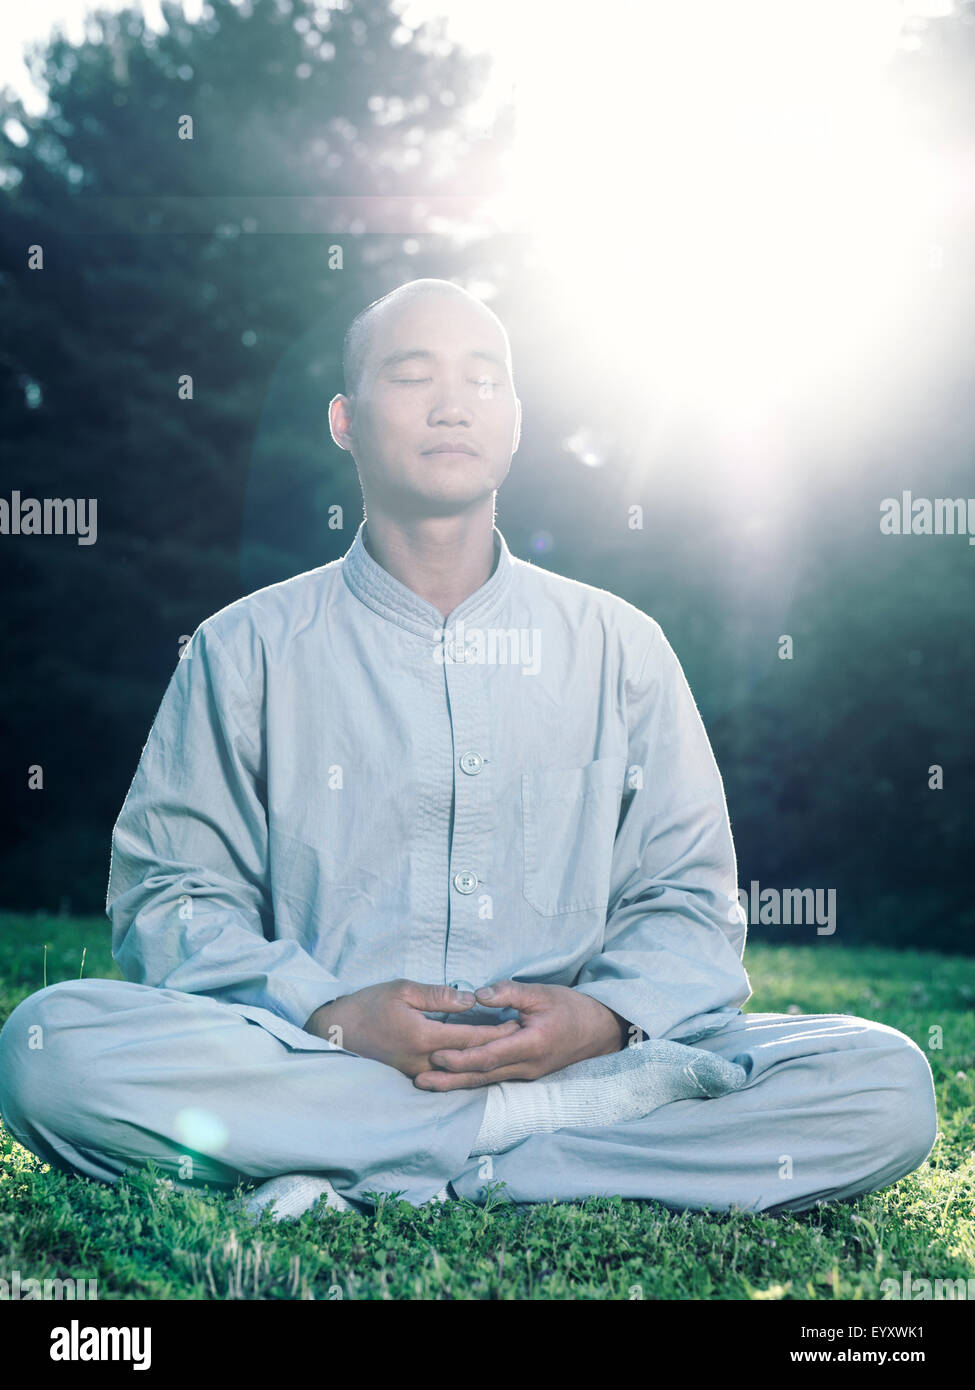 Shaolin monk meditating outdoors during sunrise in sunlight - Stock Image